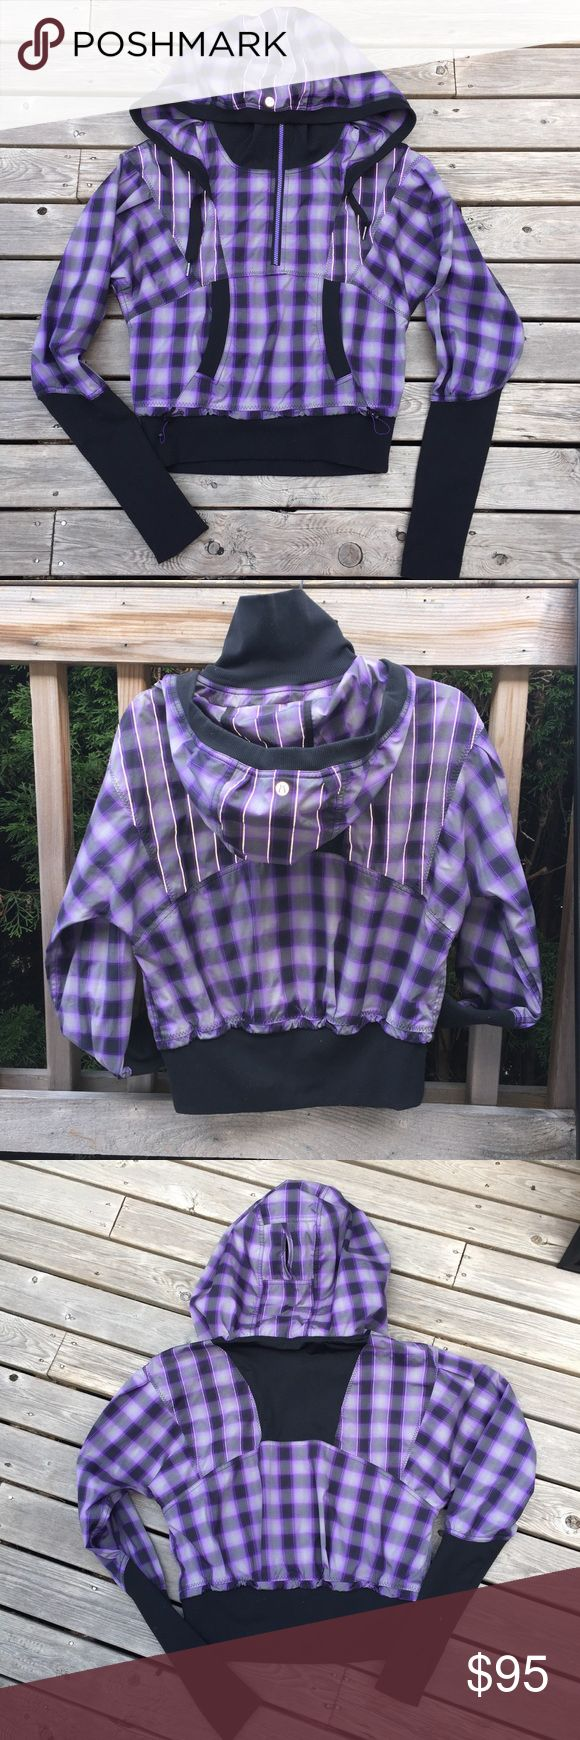 Lulu Purple Plaid Run Reflective Ponytail Pullover This is the cutest most flattering jacket ever! Lululemon purple plaid run reflection pullover jacket with half zip and kangaroo pouch pocket w/ ponytail hood. Rip tag removed, size dot 6. Normal wash wear, on the excellent condition side. Thumbholes. lululemon athletica Jackets & Coats